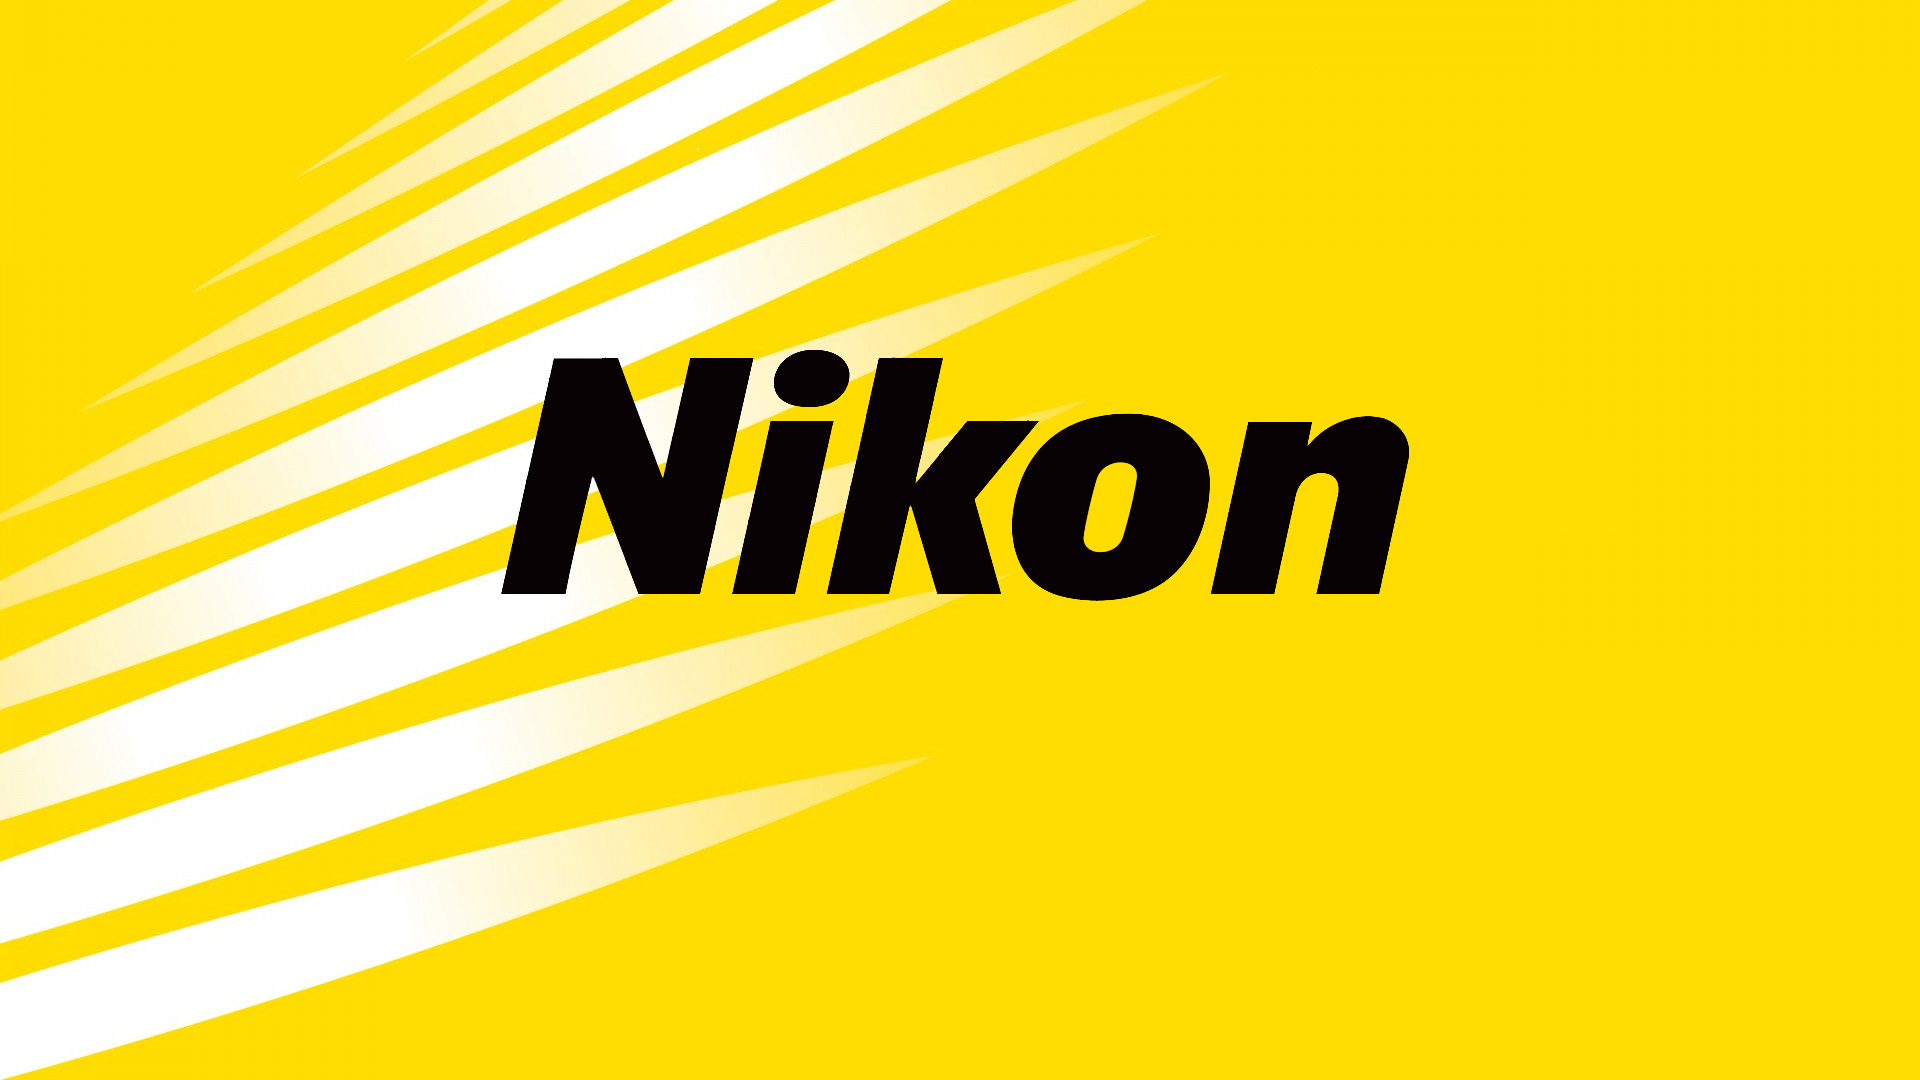 Nikon Precision will be exhibiting at our Virtual Recruitment Expo this July 15th